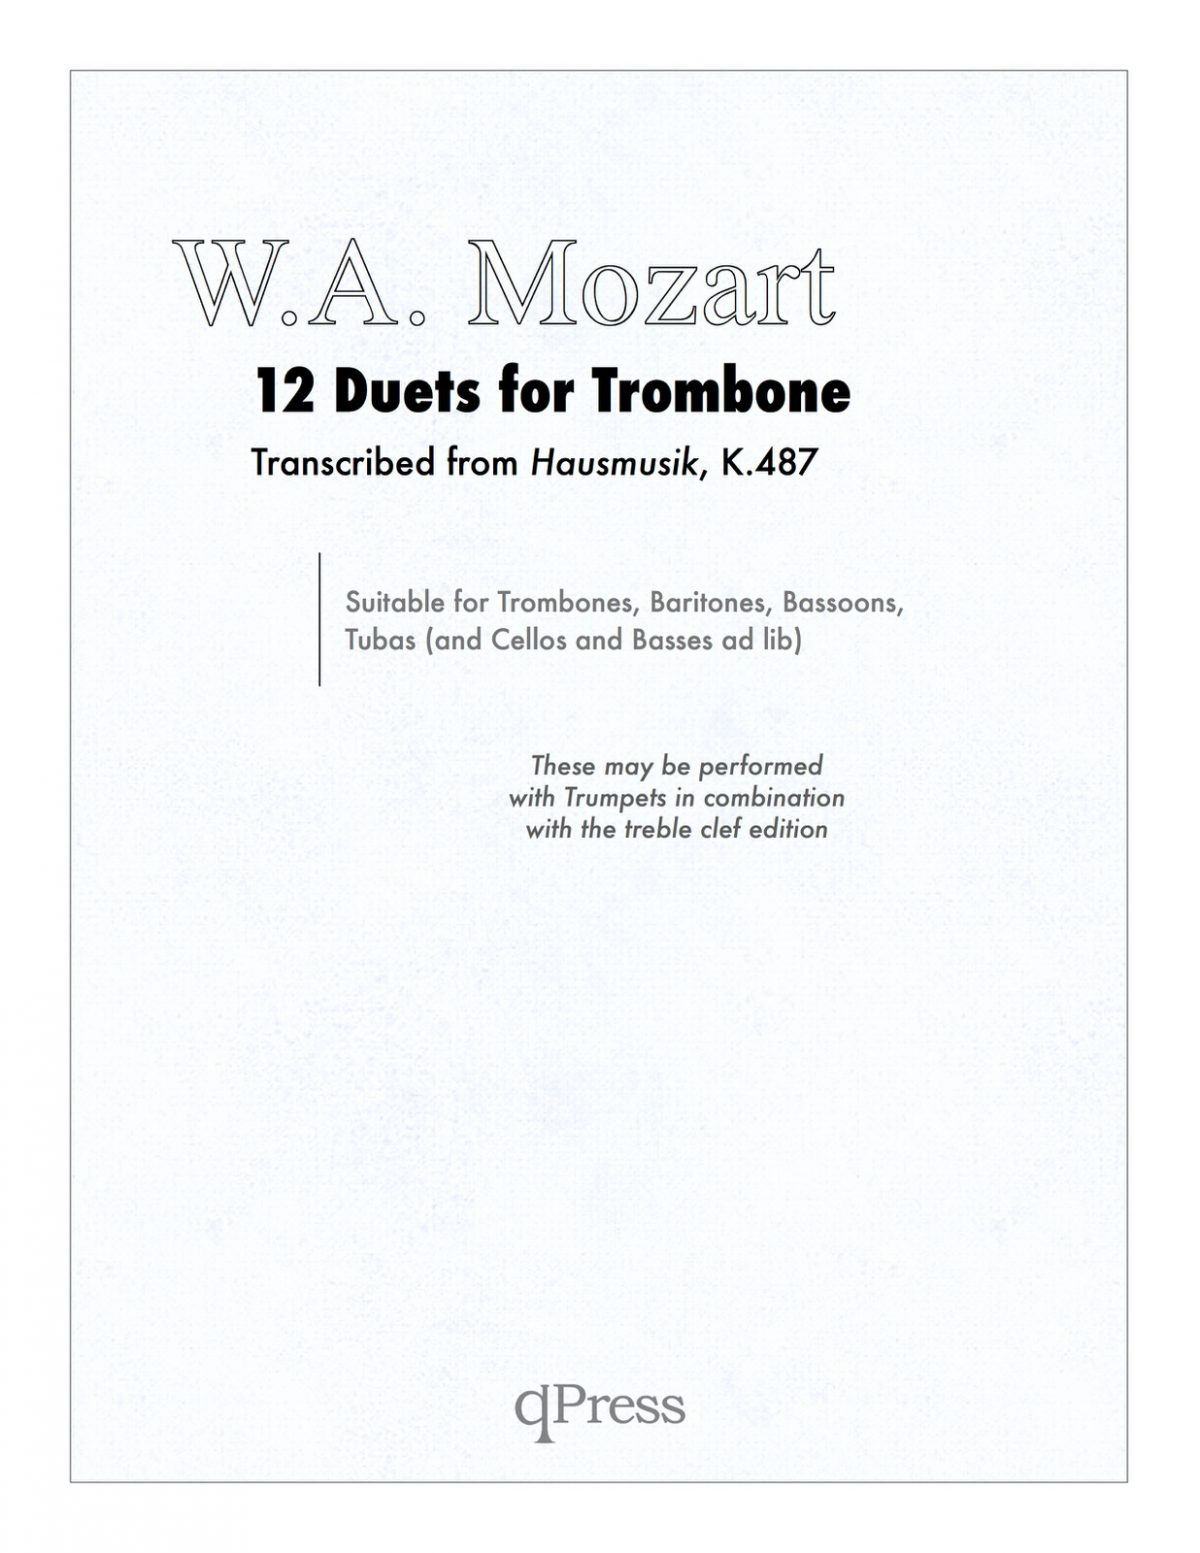 mozart-12-duets-for-trombone